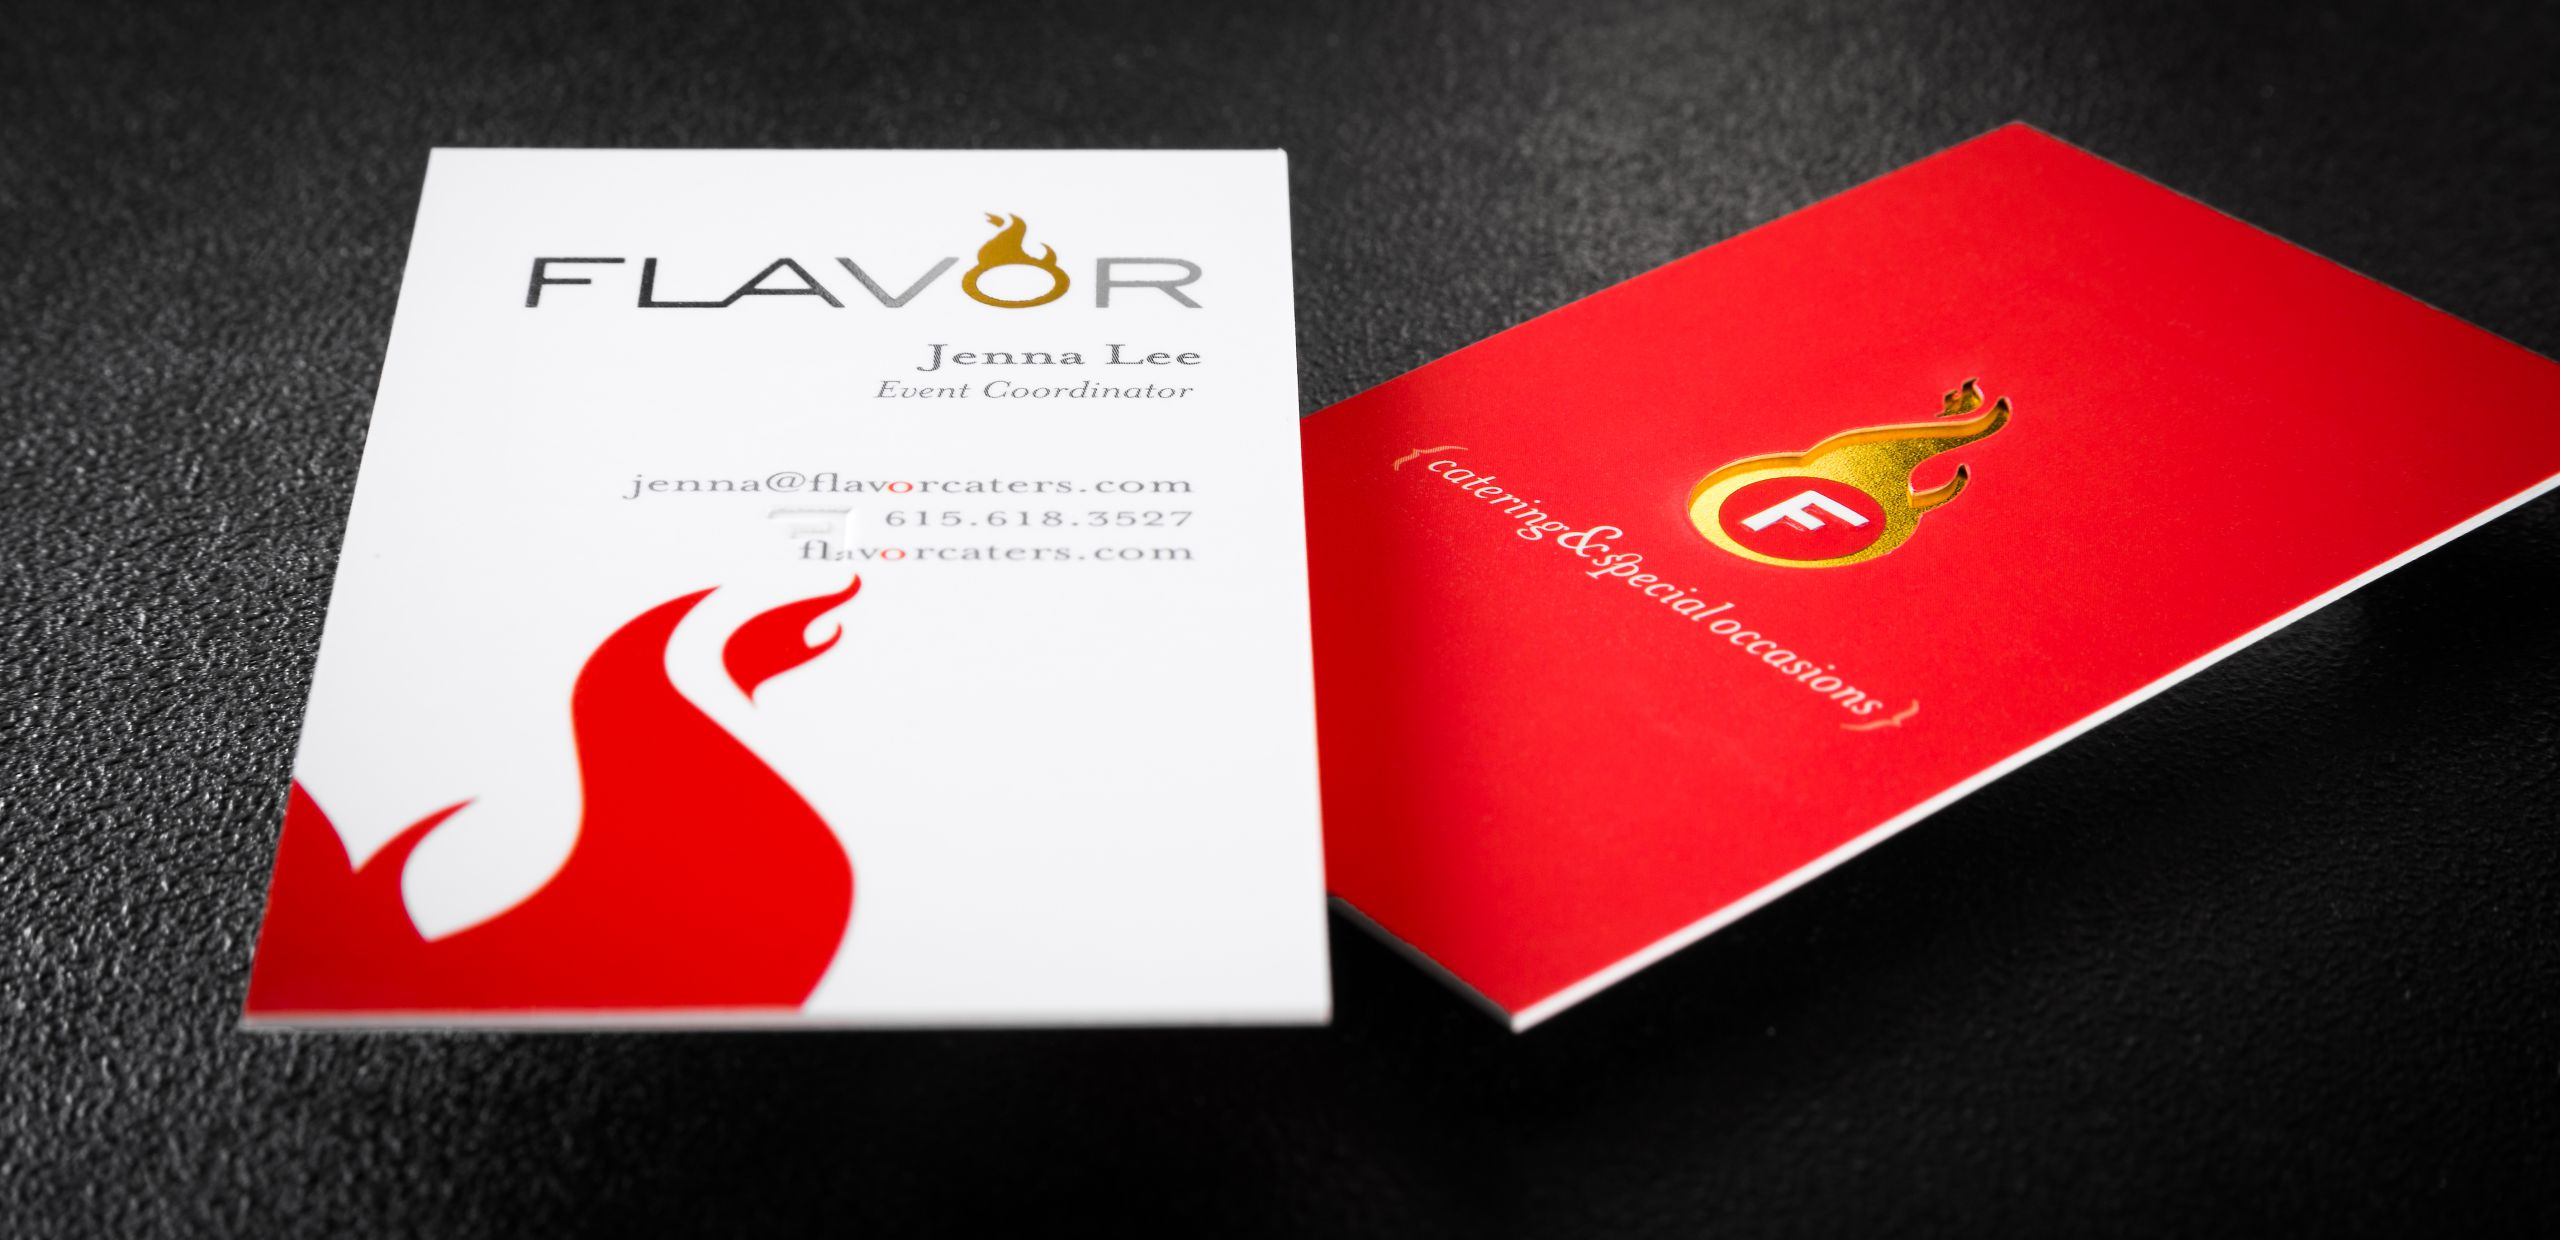 Custom online business card plastic card printing 4colorprint 32pt suede laminated cards custom die cut gold foil embossing reheart Choice Image